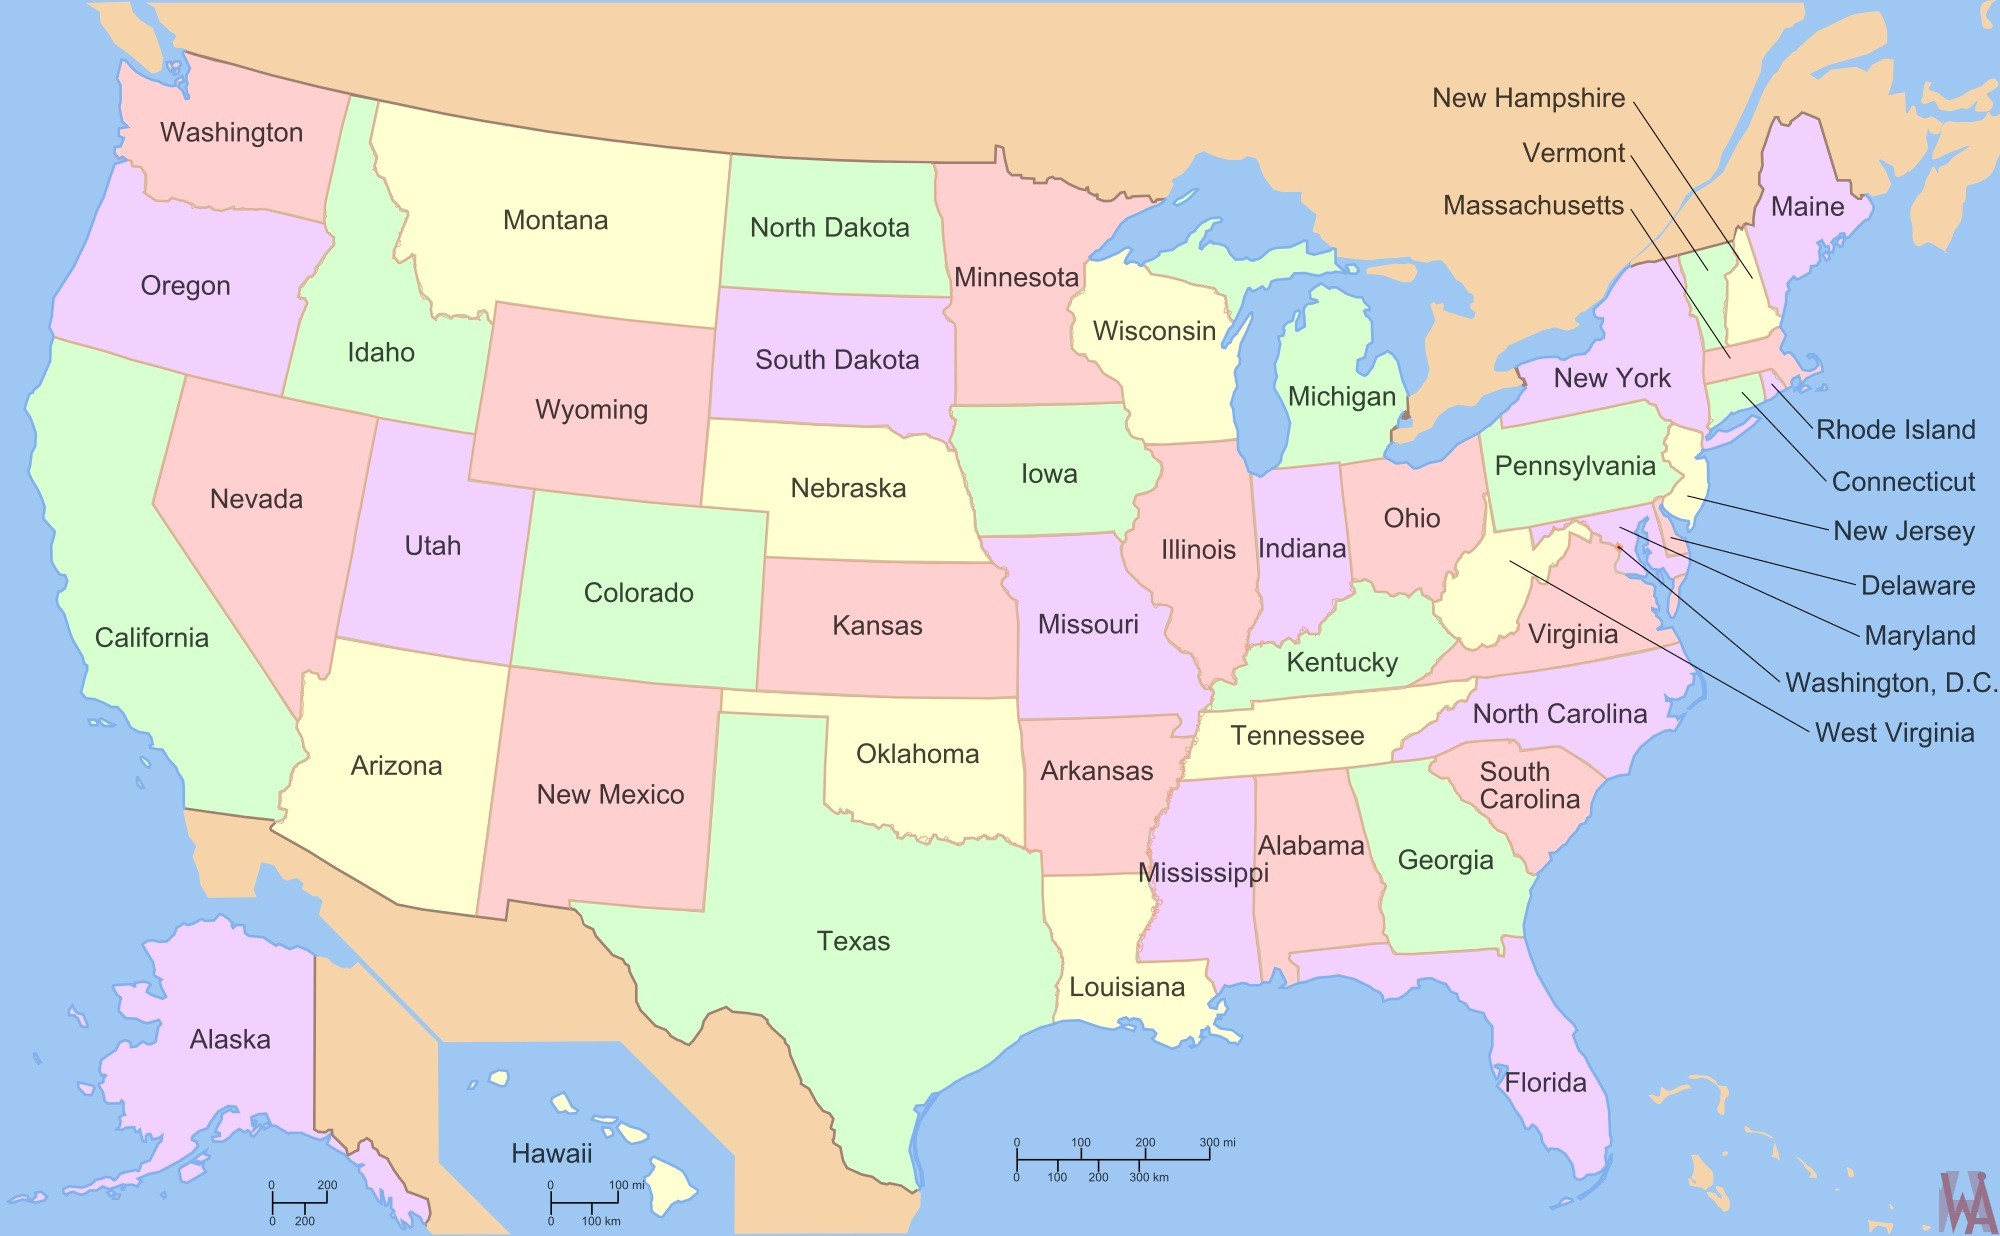 large state Map of the USA